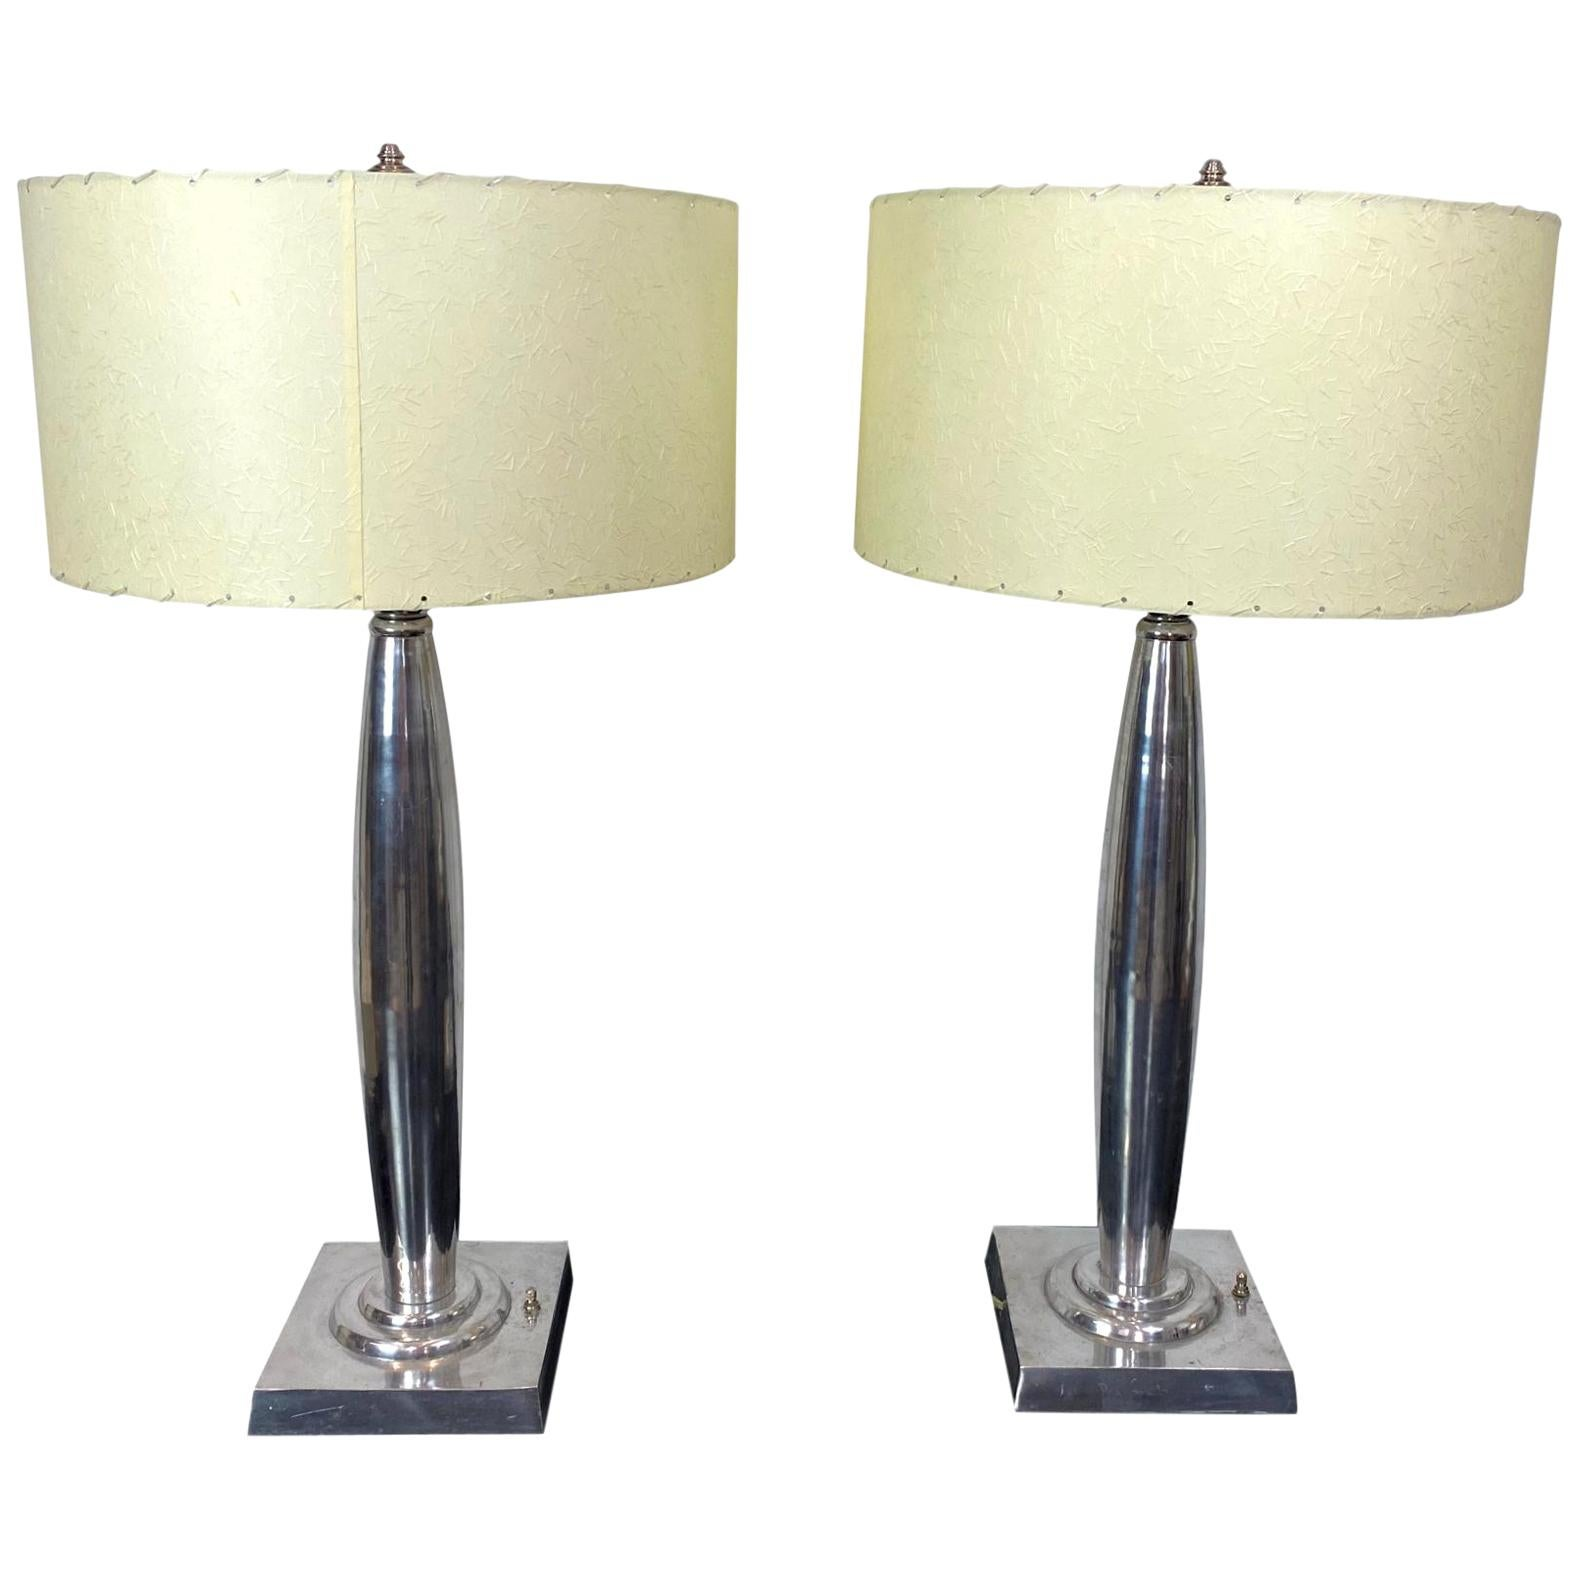 Pair Mid-Century Modern Aluminum Table Lamps with New Custom Laced Shades French